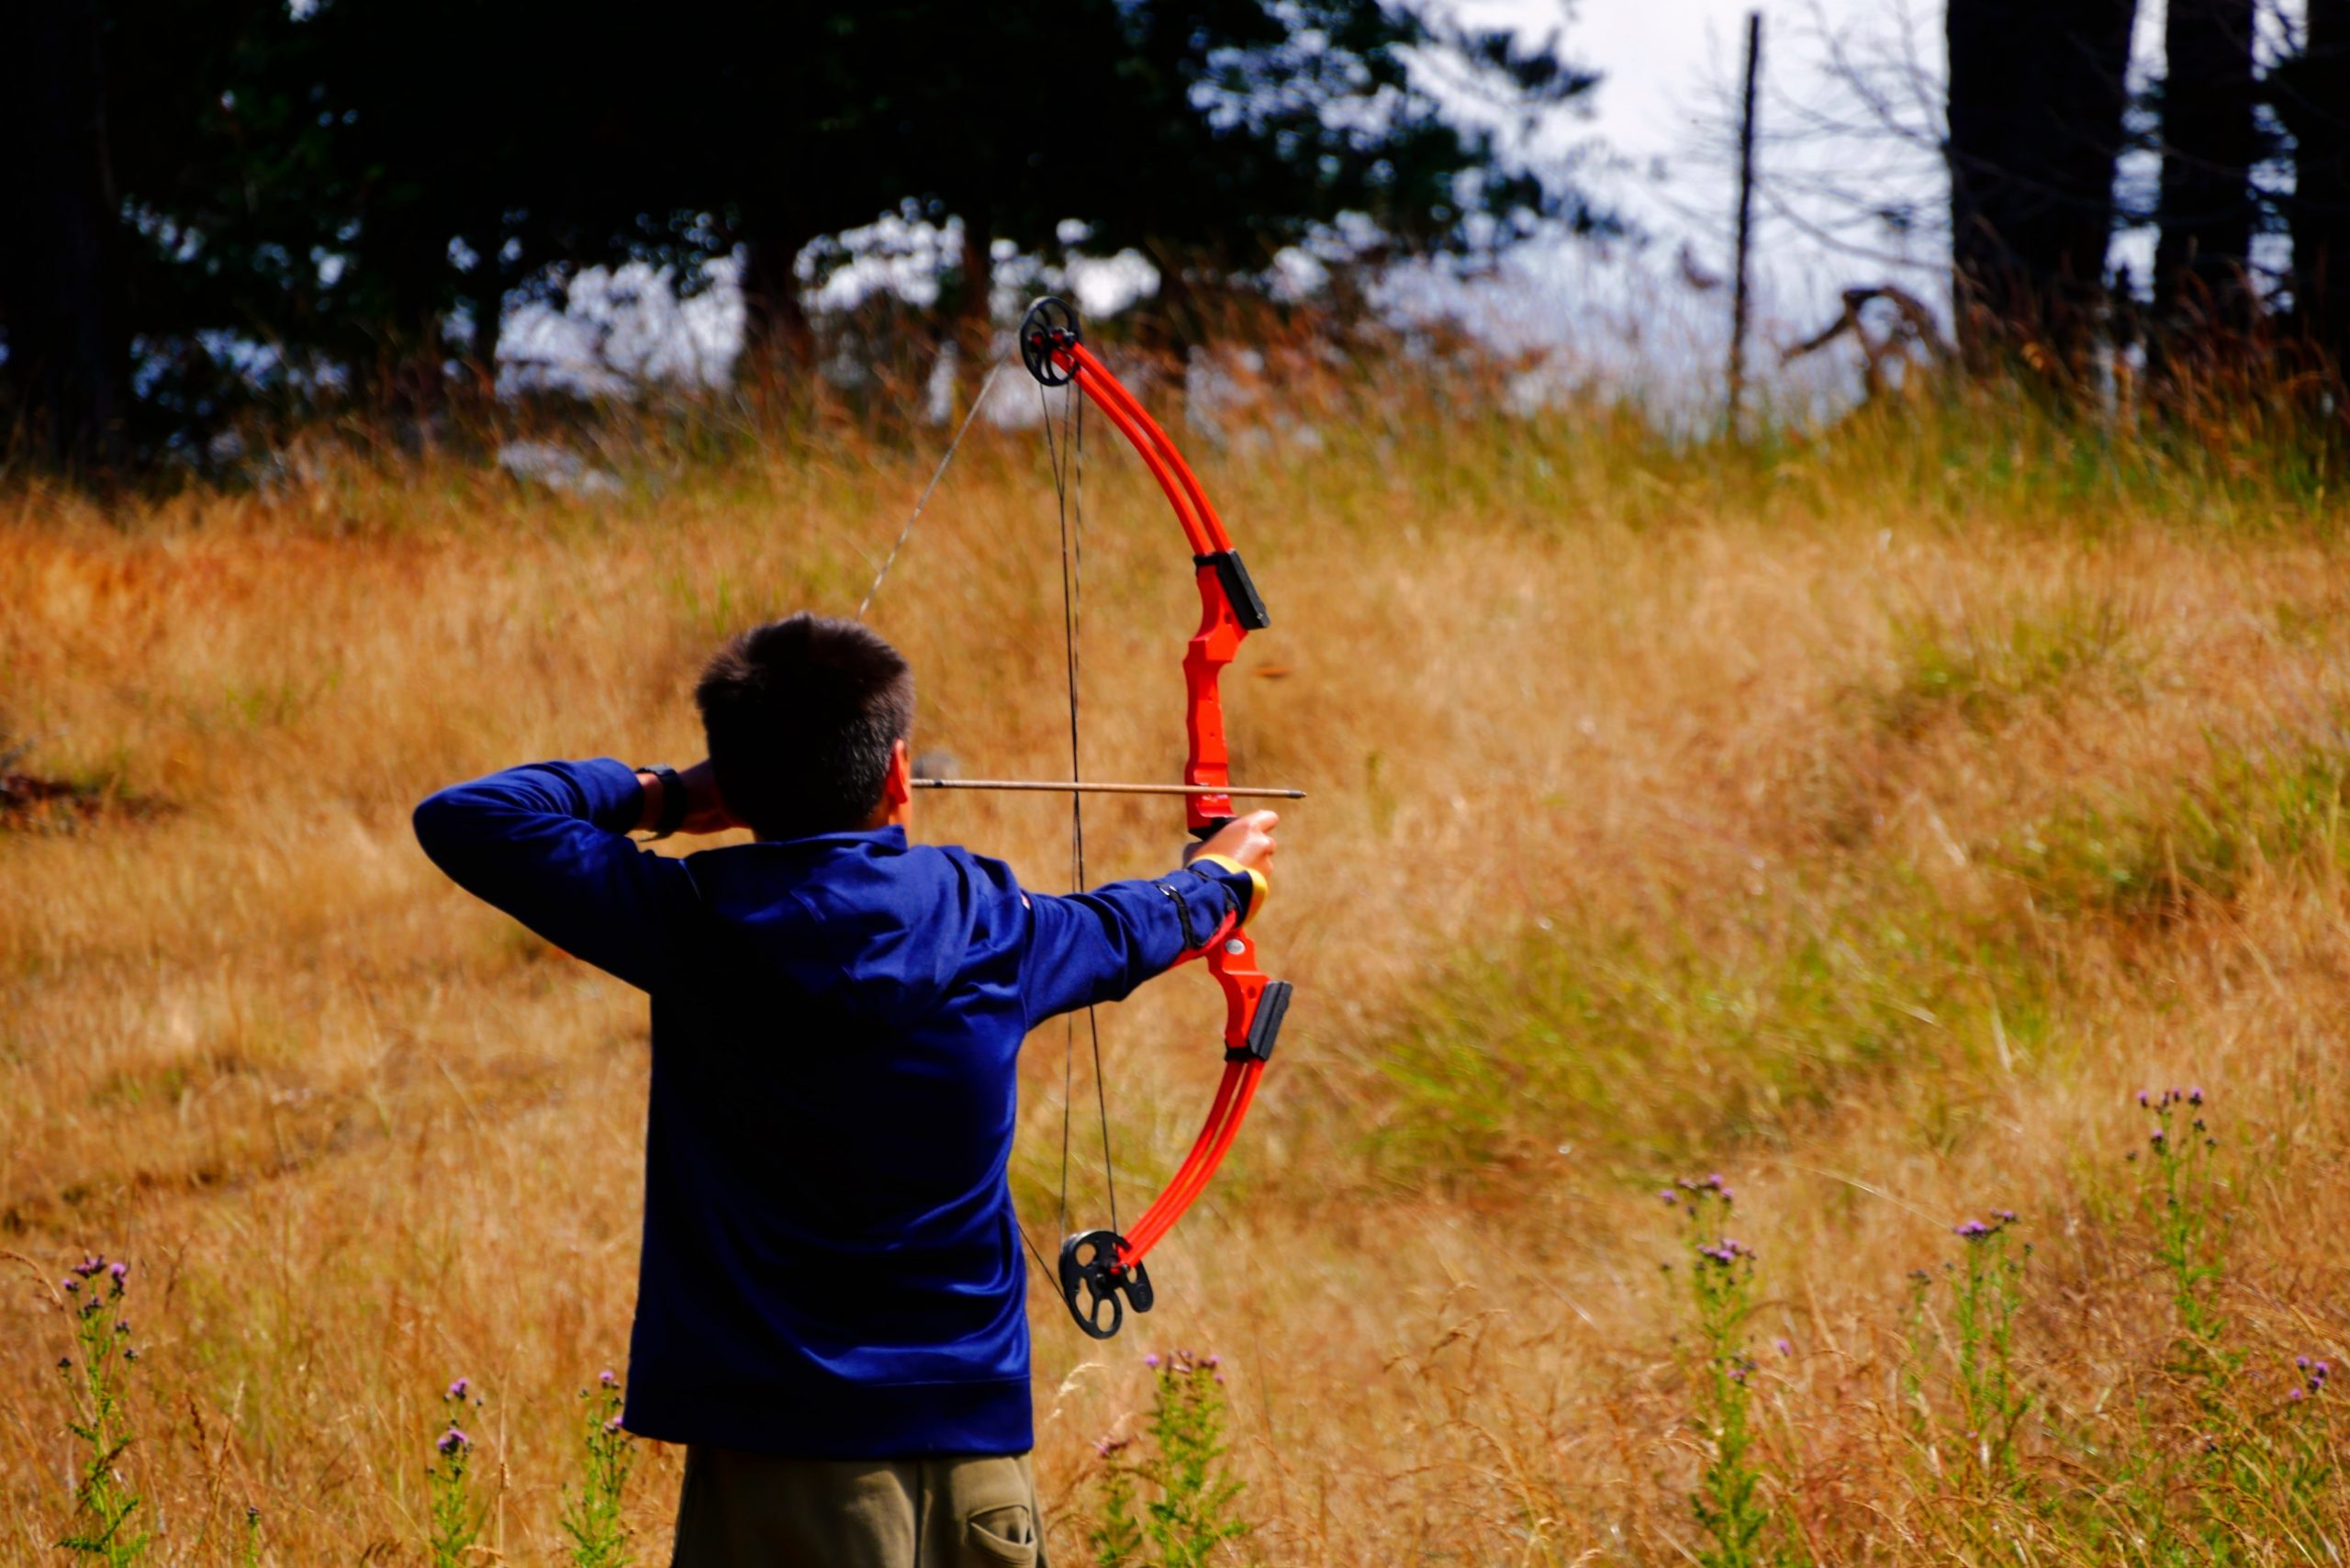 How to Tell the Draw Weight of a Compound Bow